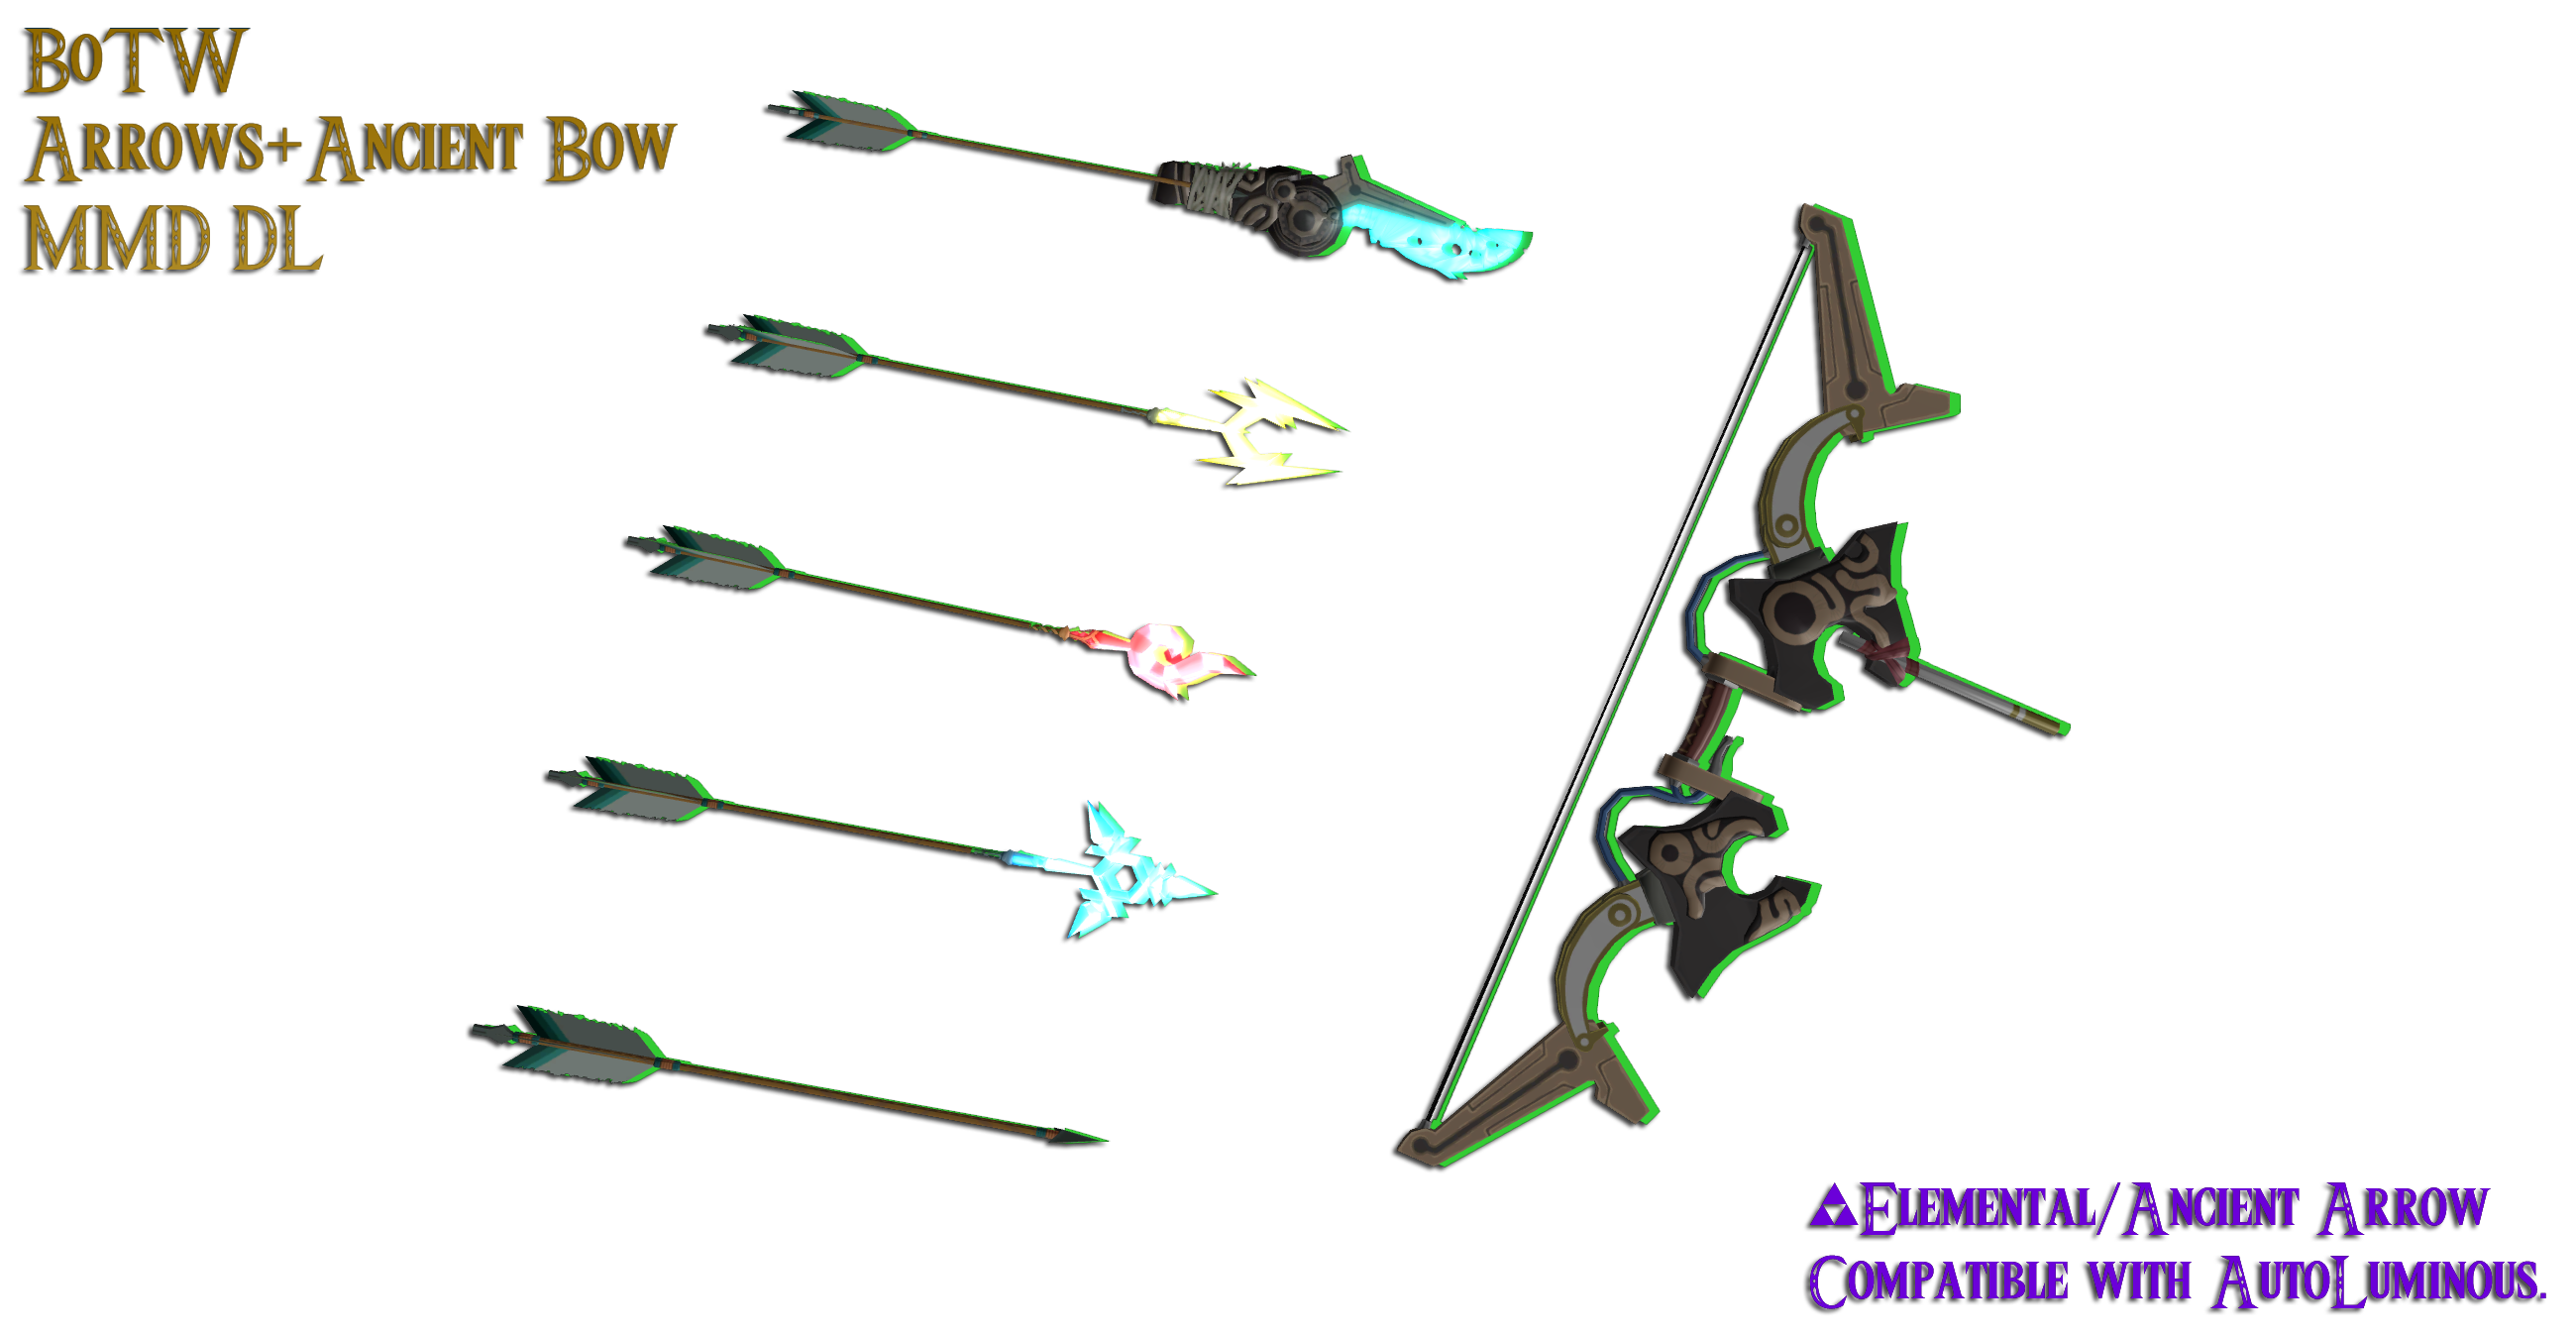 MMD - Ancient Bow + Arrows (BoTW) [+Dl]| by Hylian-Ale on